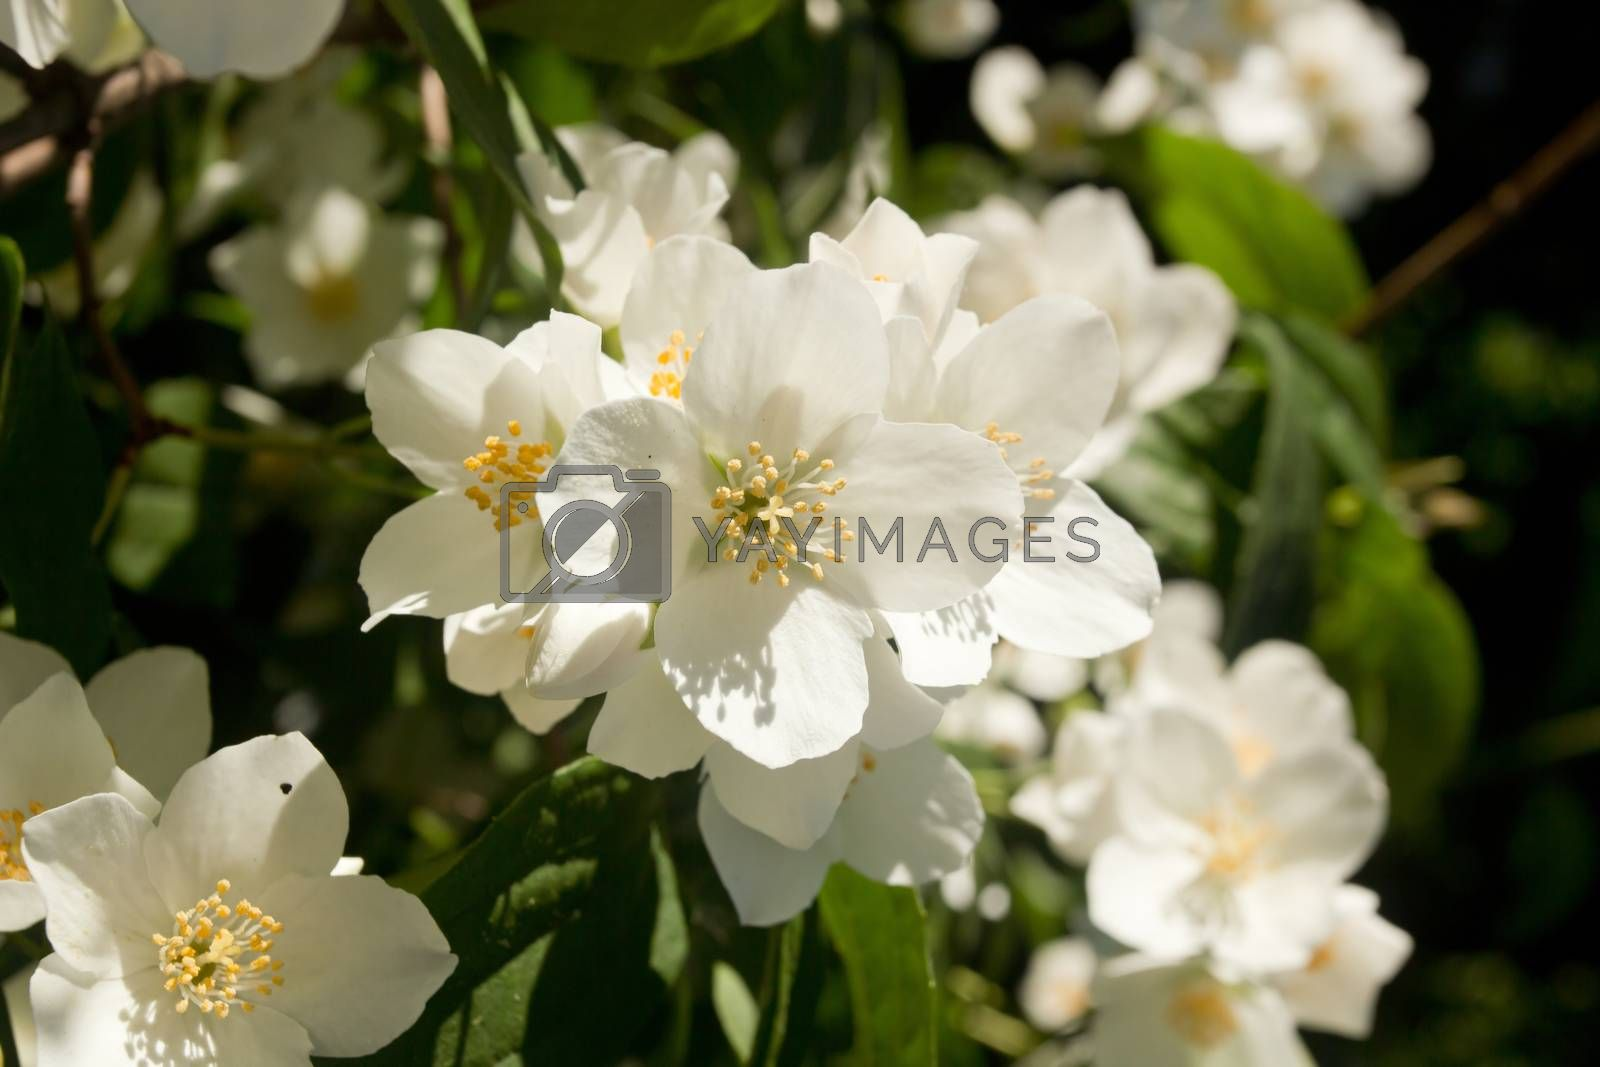 Blooming apple tree branches in spring close up